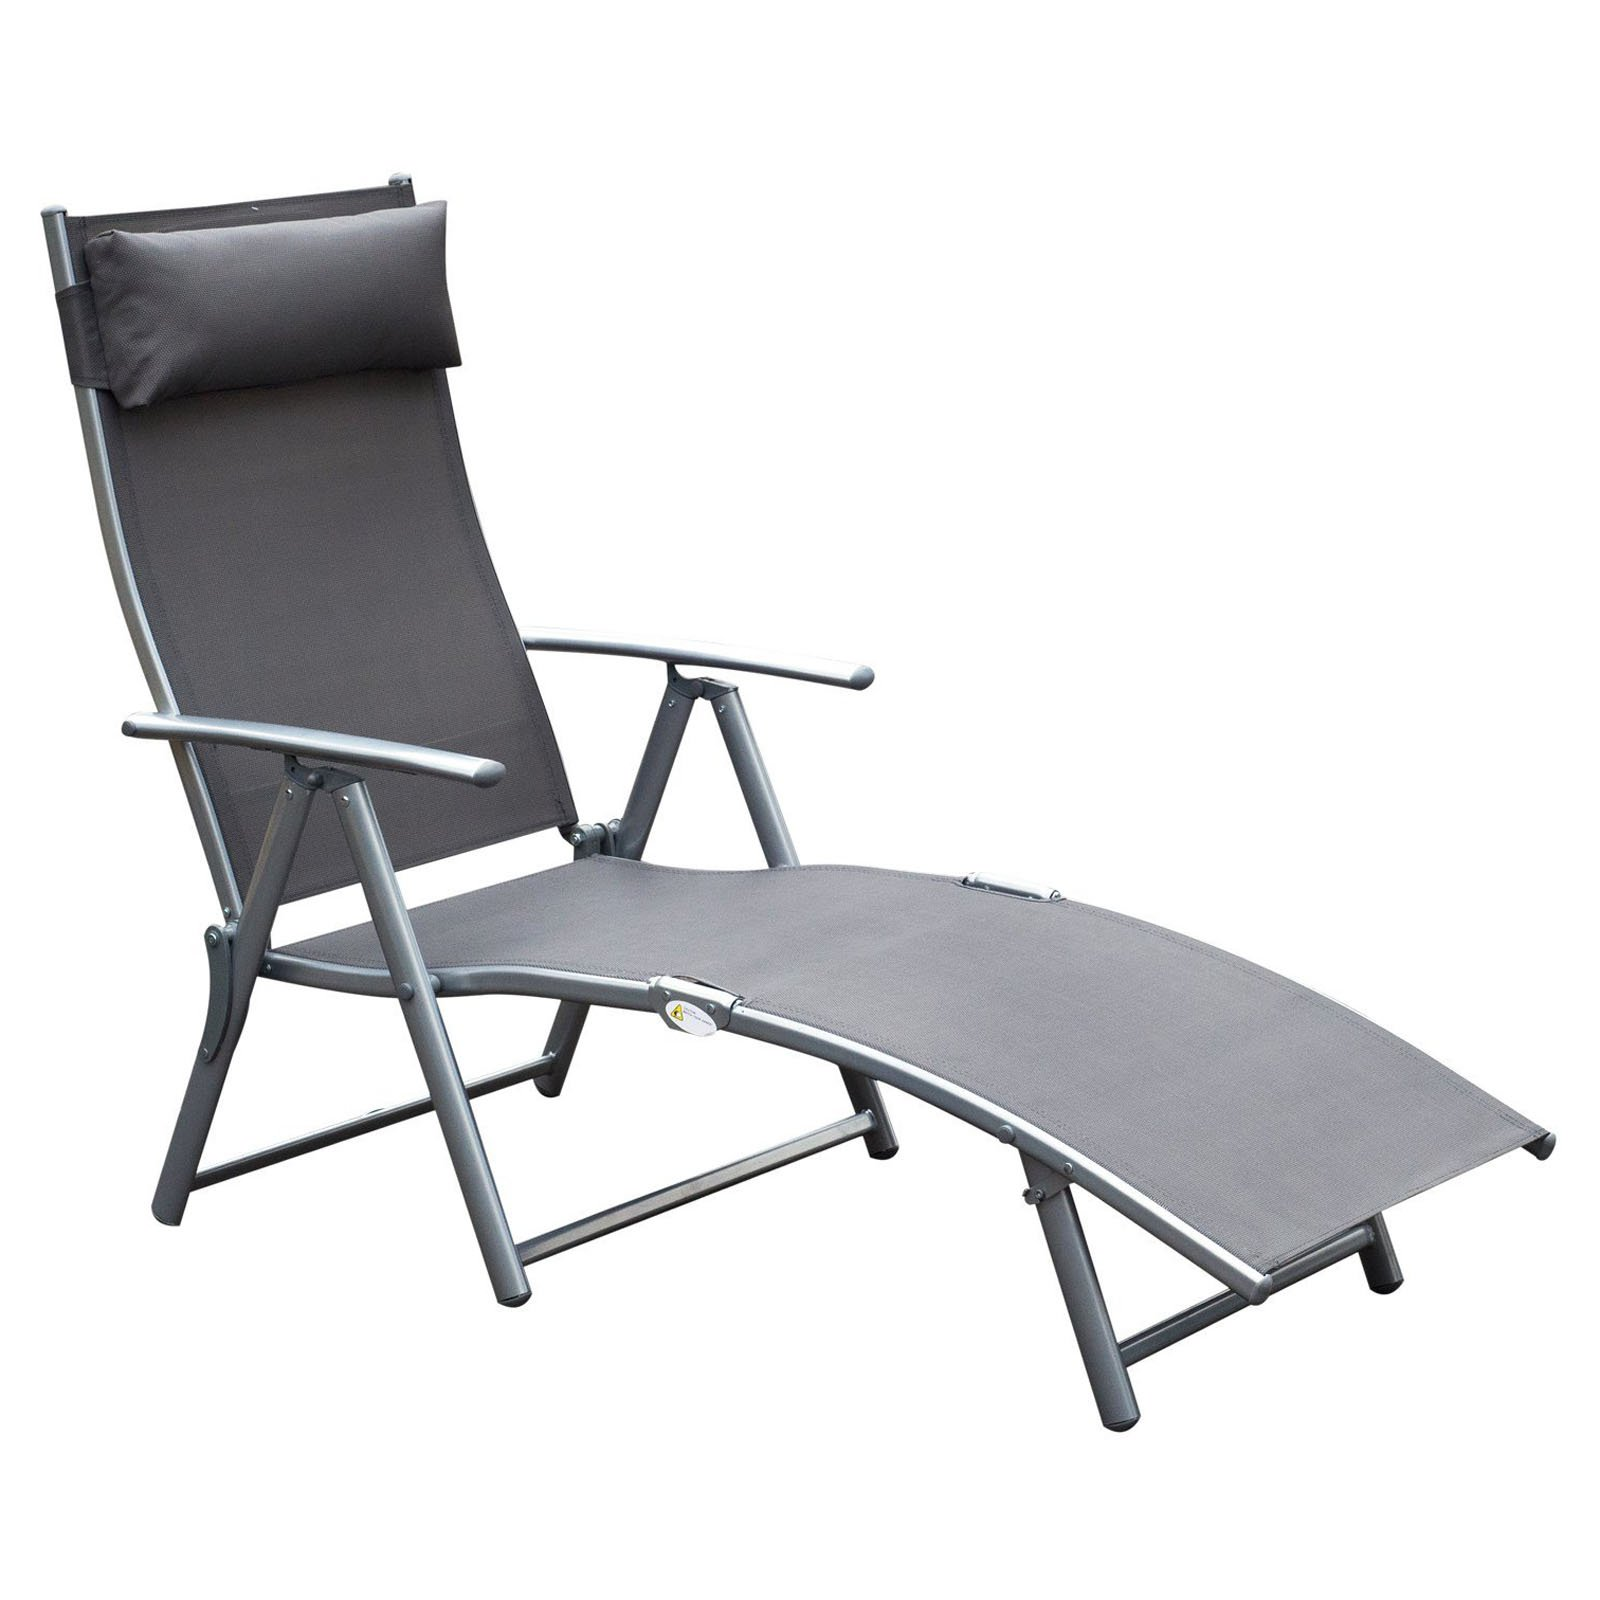 Outsunny Steel Sling Outdoor Folding Chaise Lounge Chair